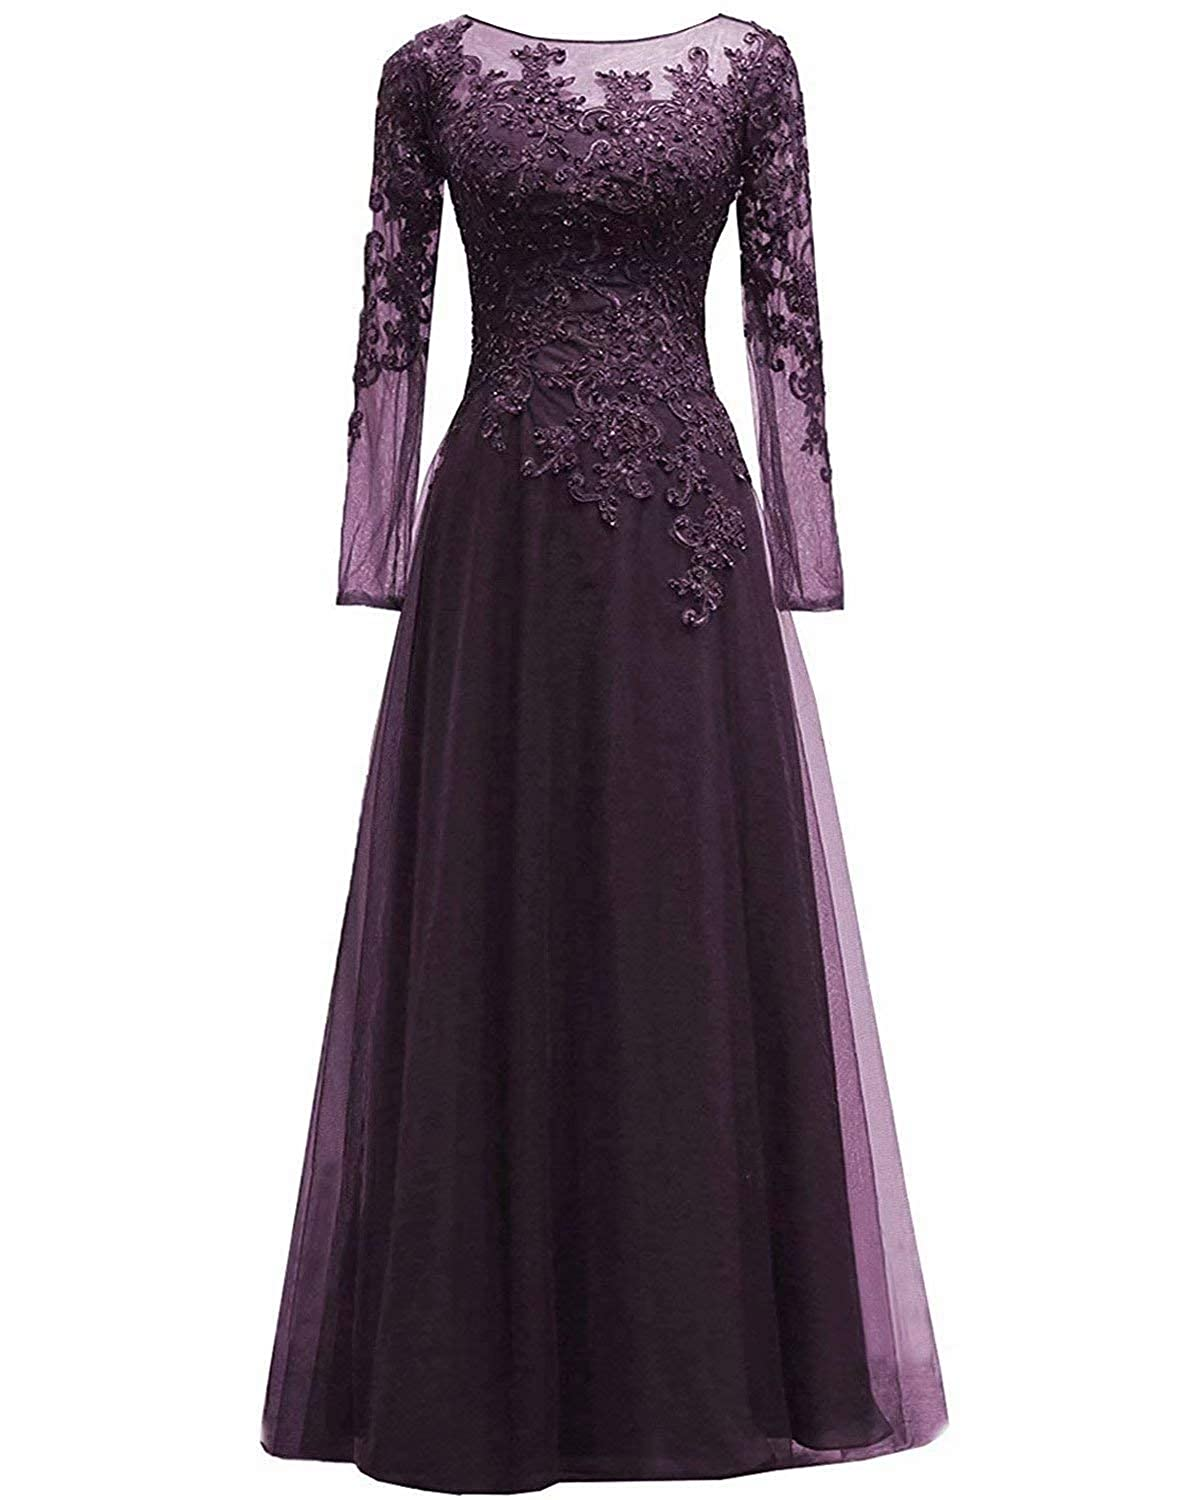 80s Dresses | Casual to Party Dresses Womens Lace Appliques Mother of The Bride Dress Tulle Long Sleeves Evening Prom Gown Beaded $89.99 AT vintagedancer.com